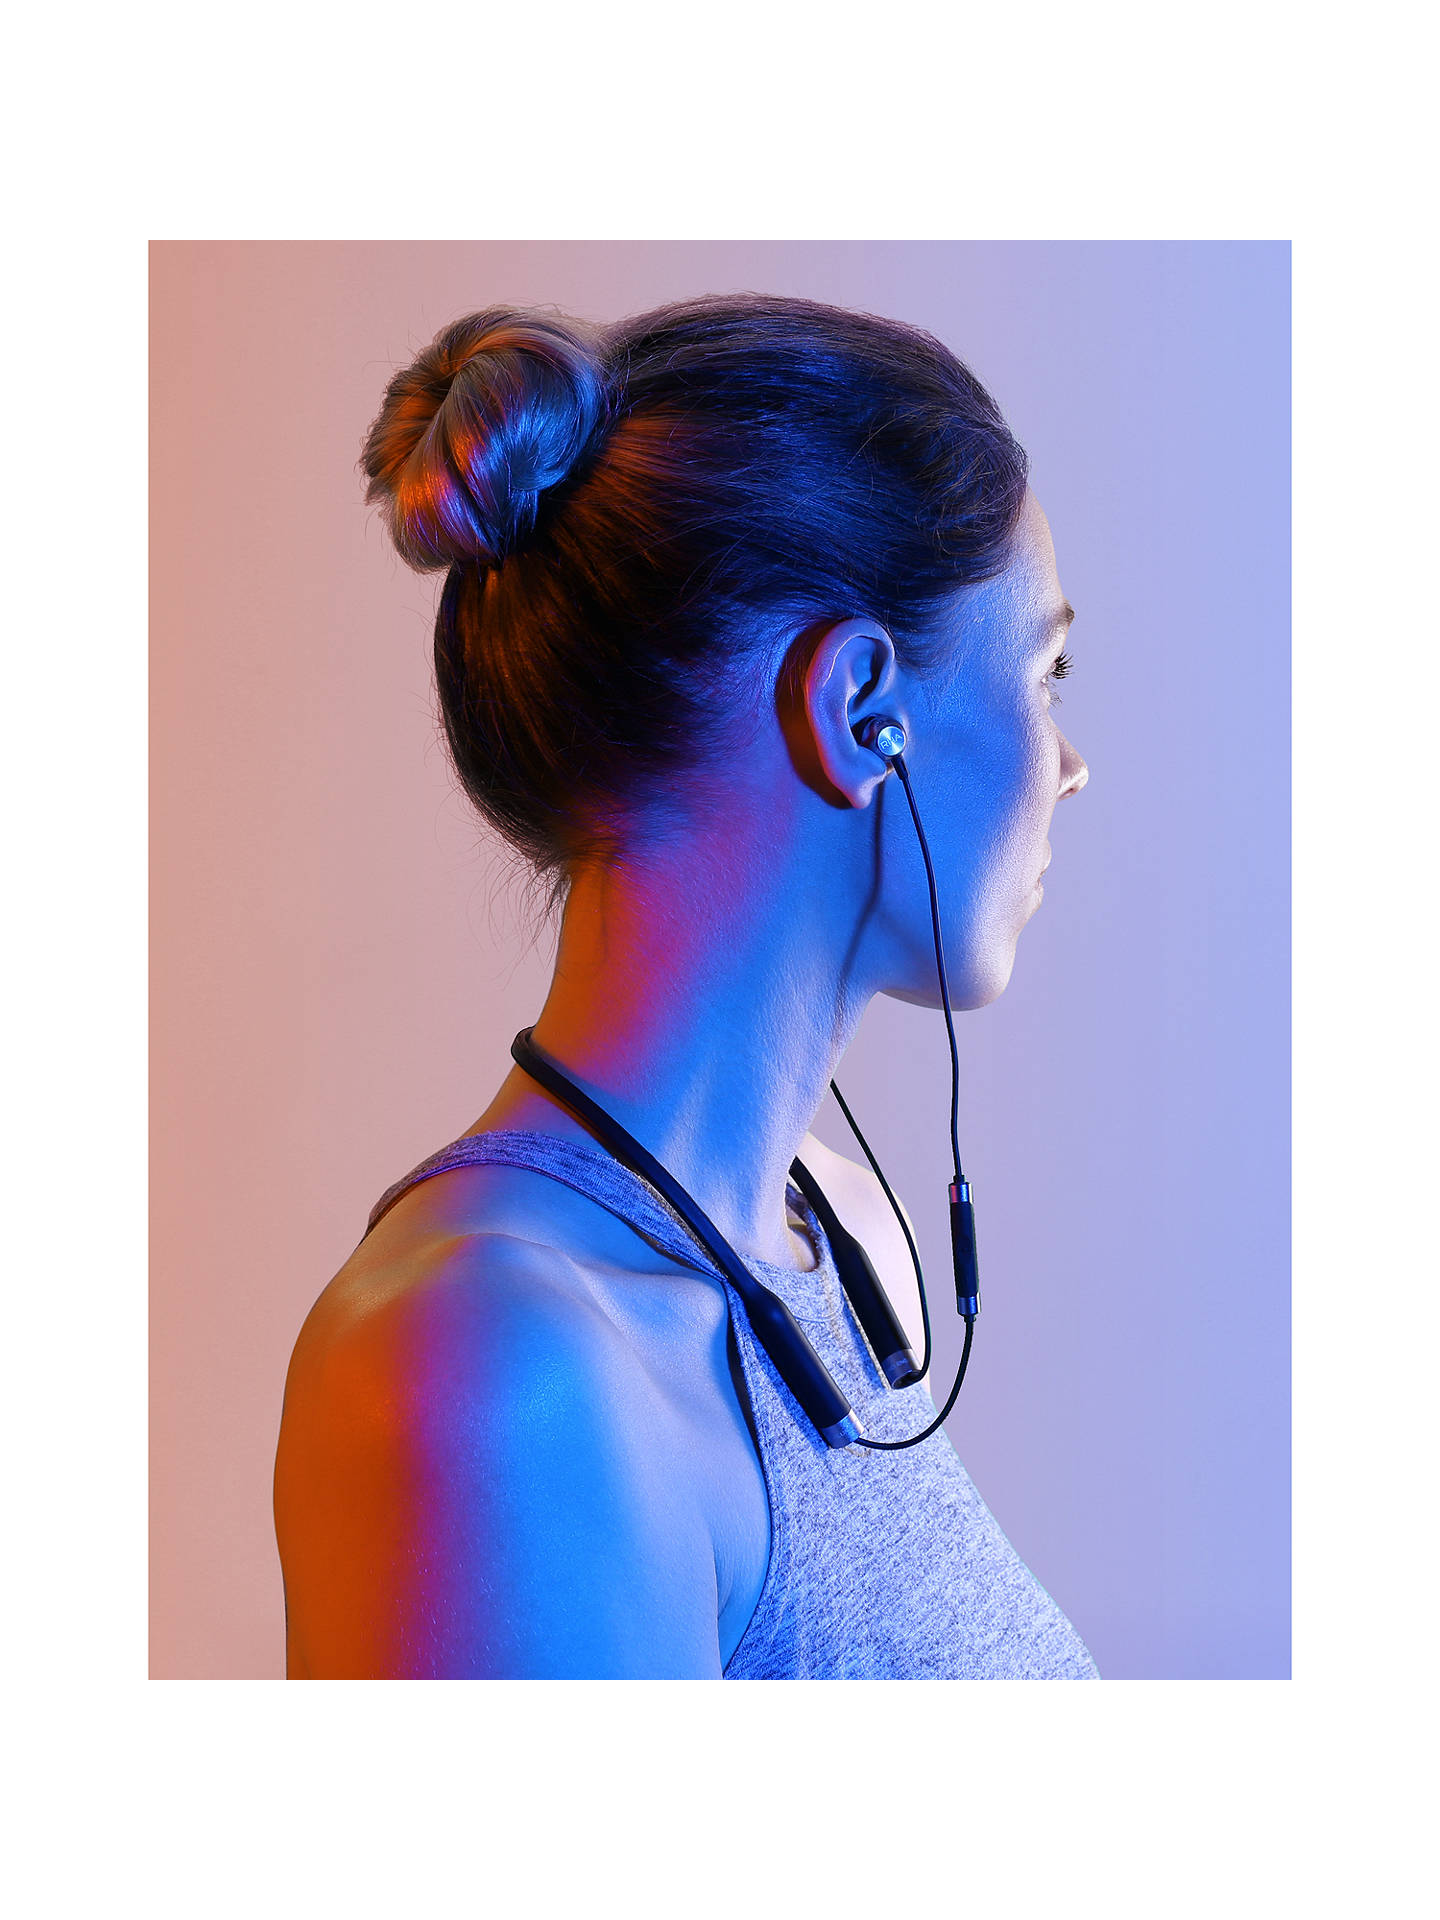 BuyRHA MA650 Wireless Bluetooth NFC In-Ear Headphones with High Resolution Audio & Mic/Remote, Black Online at johnlewis.com